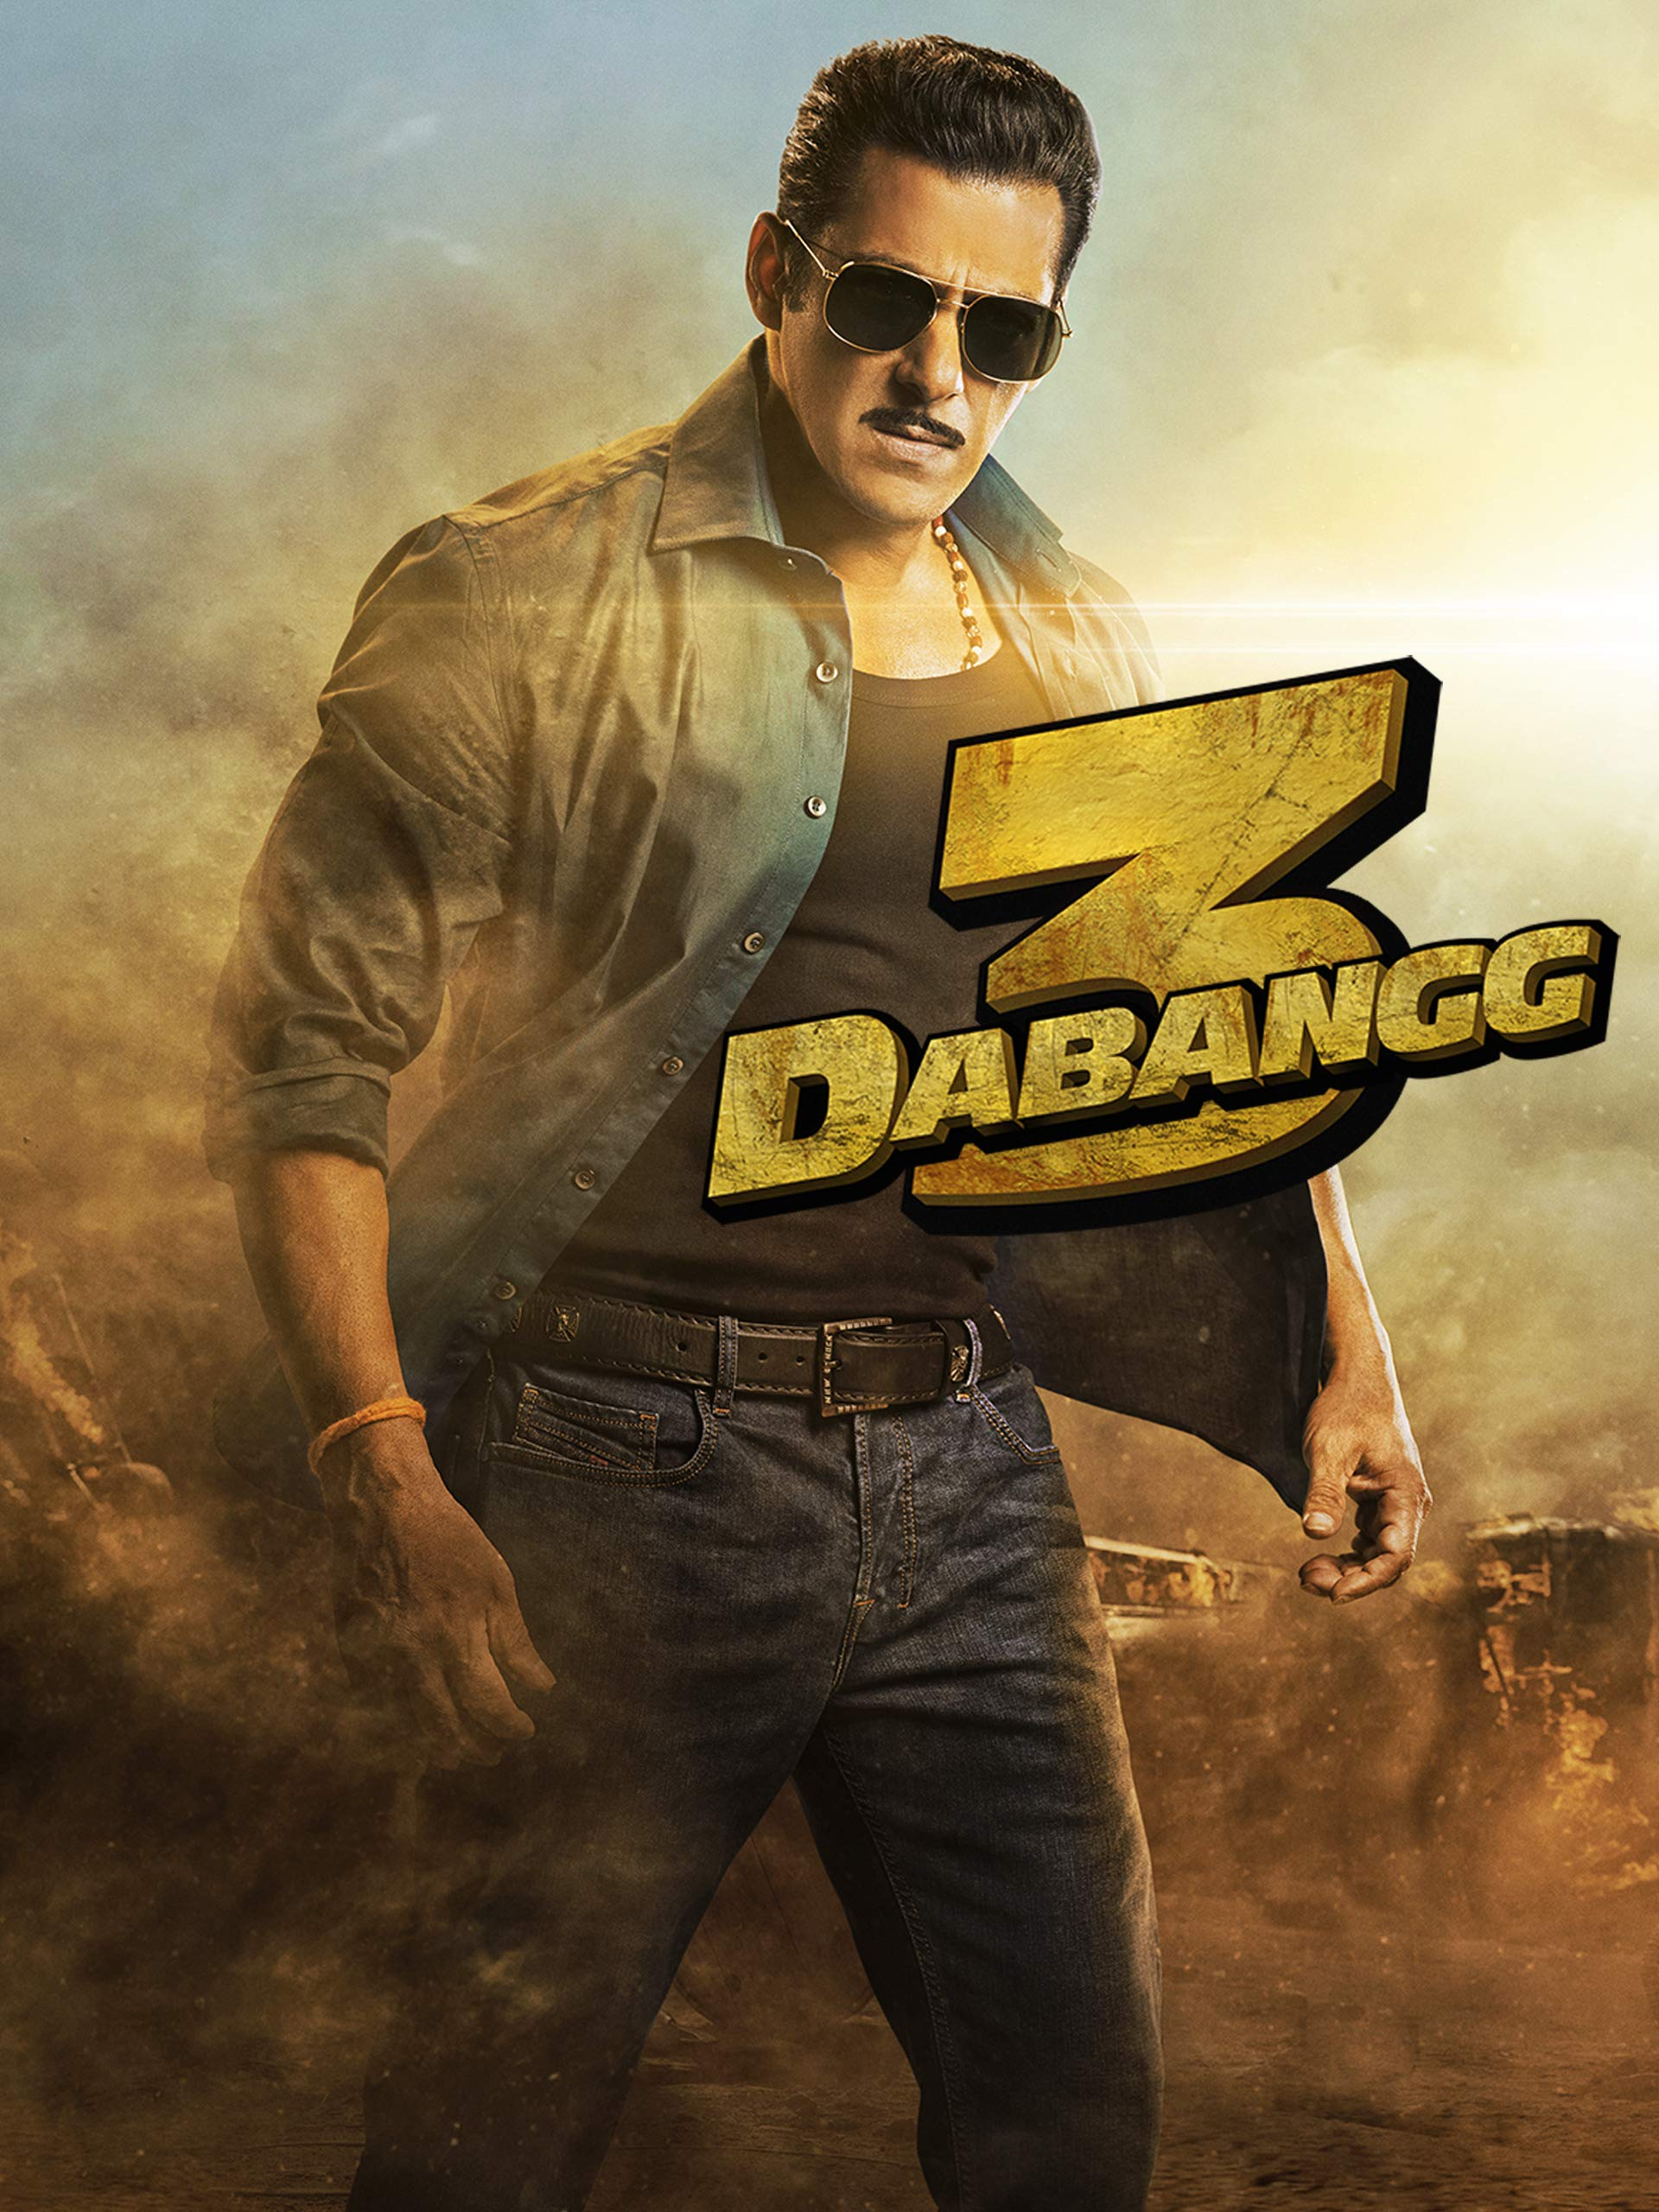 Salman Khan's Dabangg 3 is now streaming on Amazon Prime Video